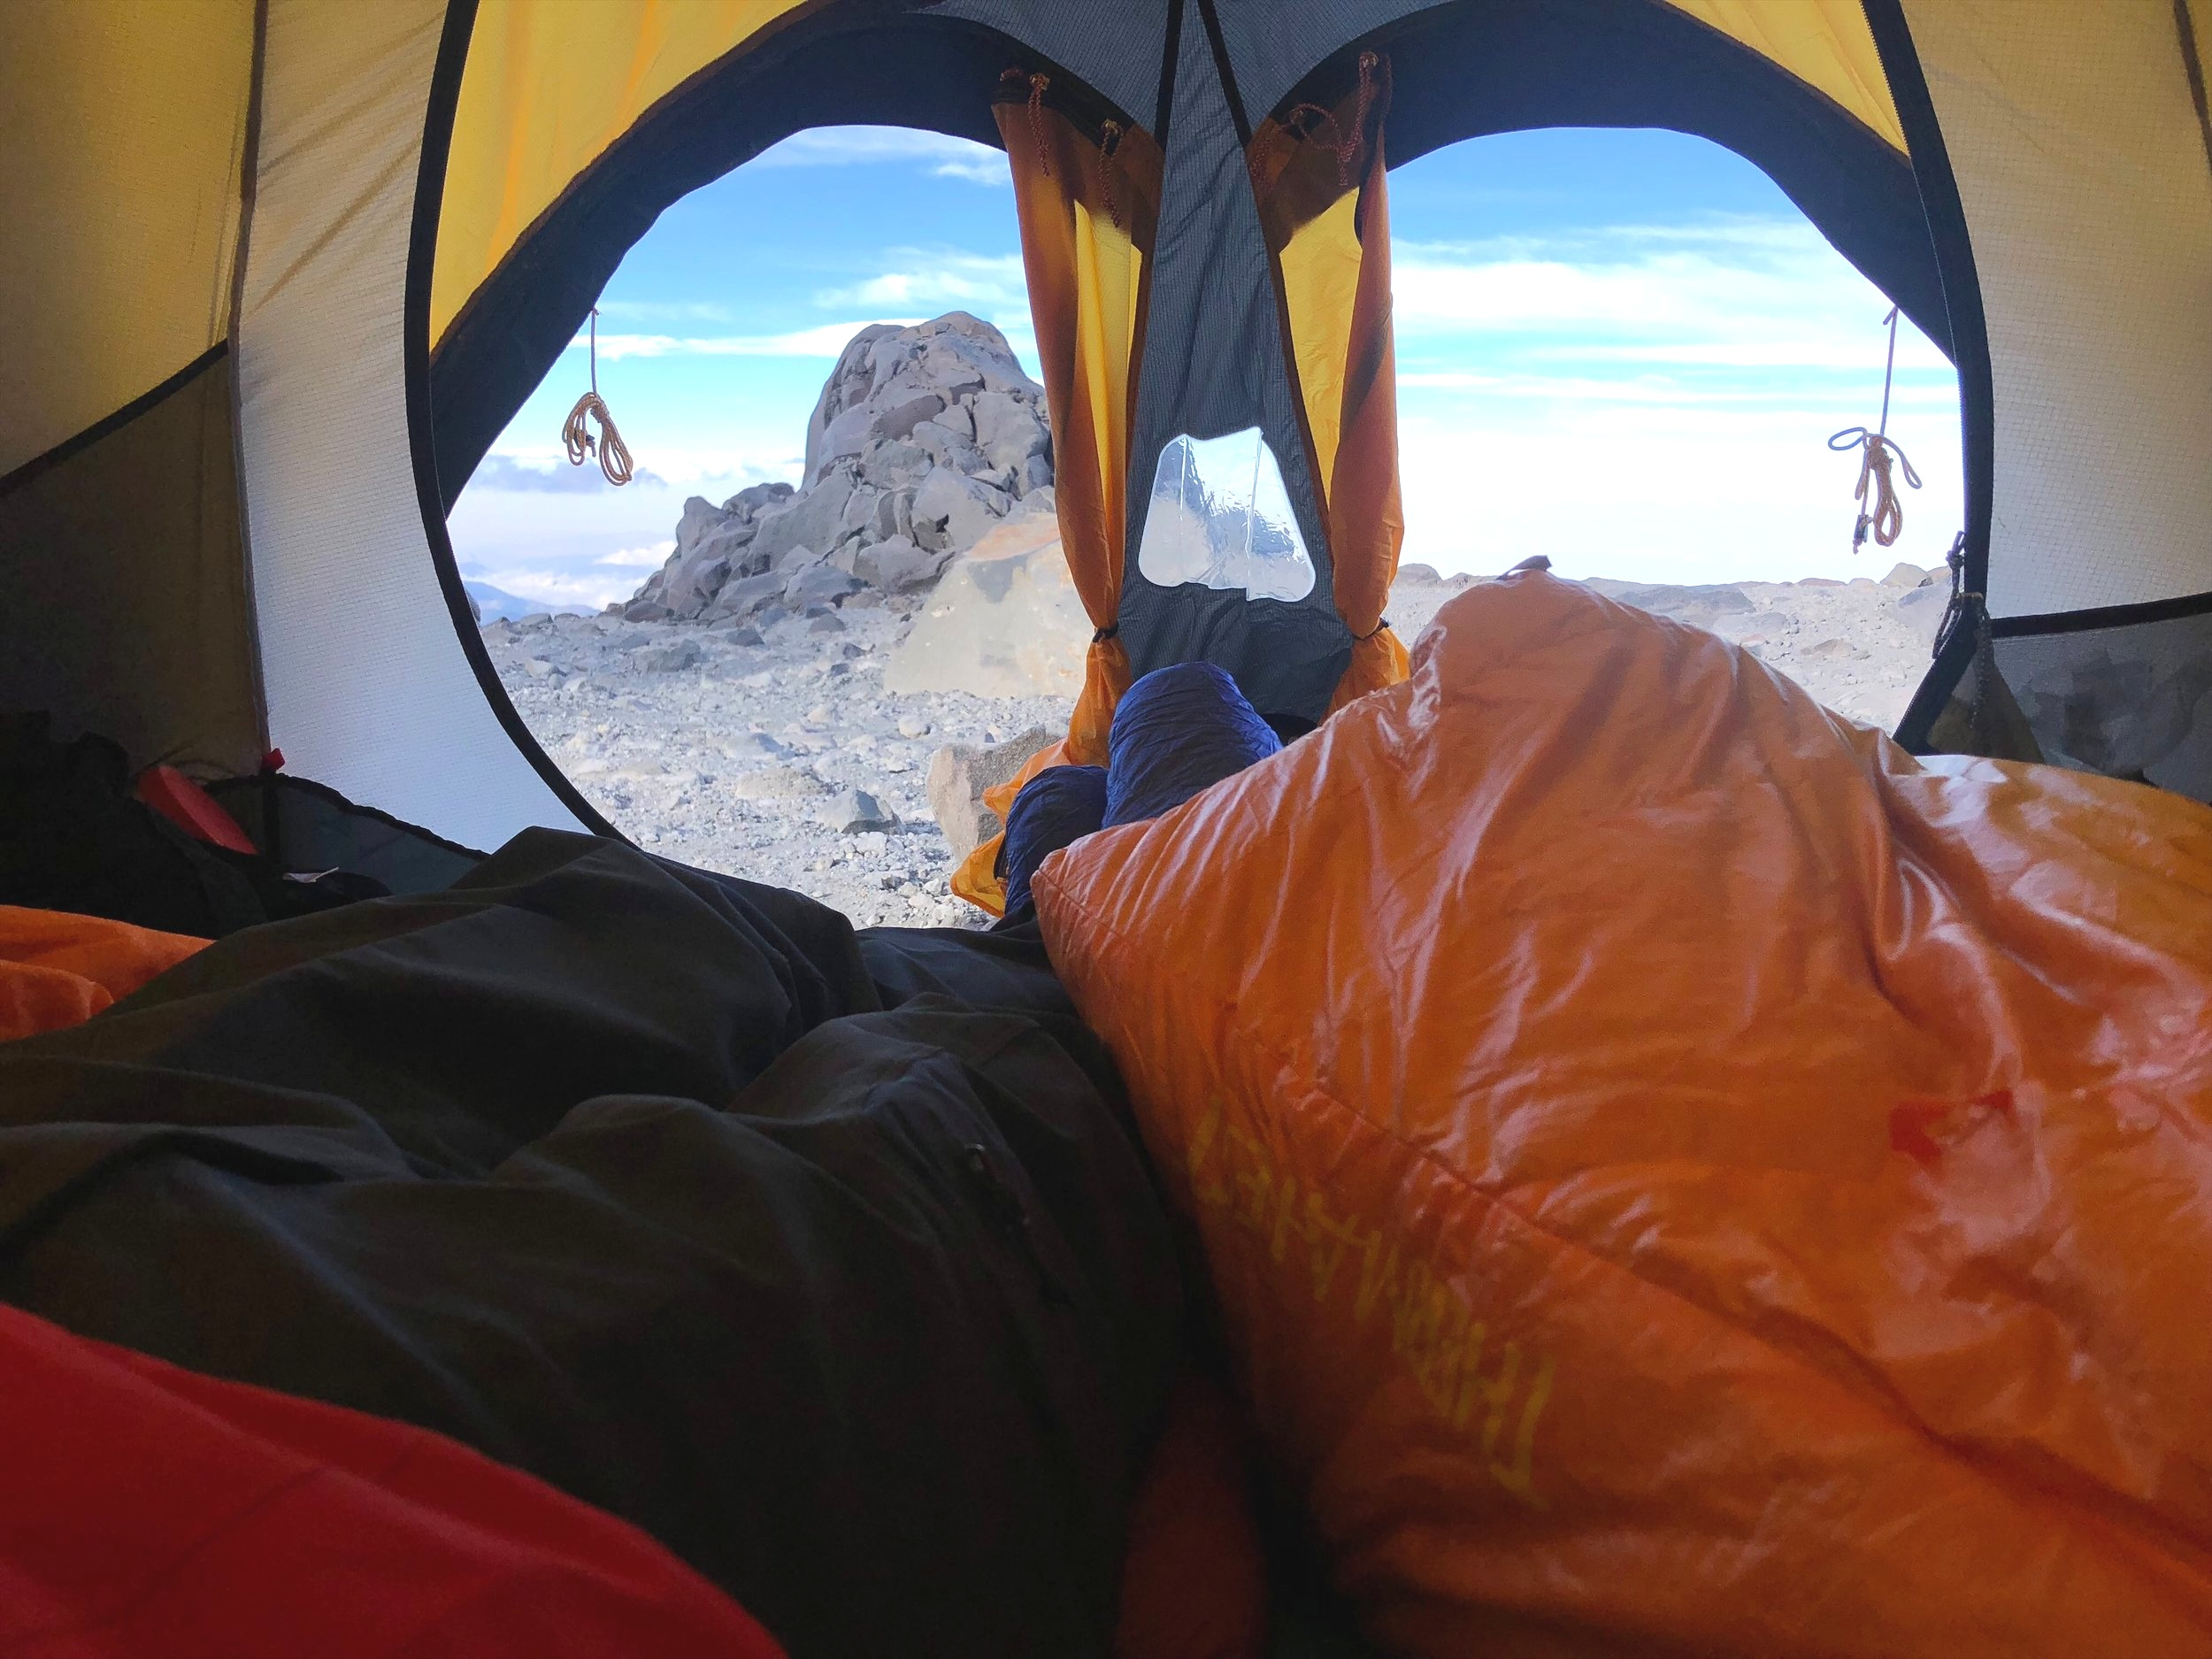 orizaba+high+camp+ctss+tent+thermarest